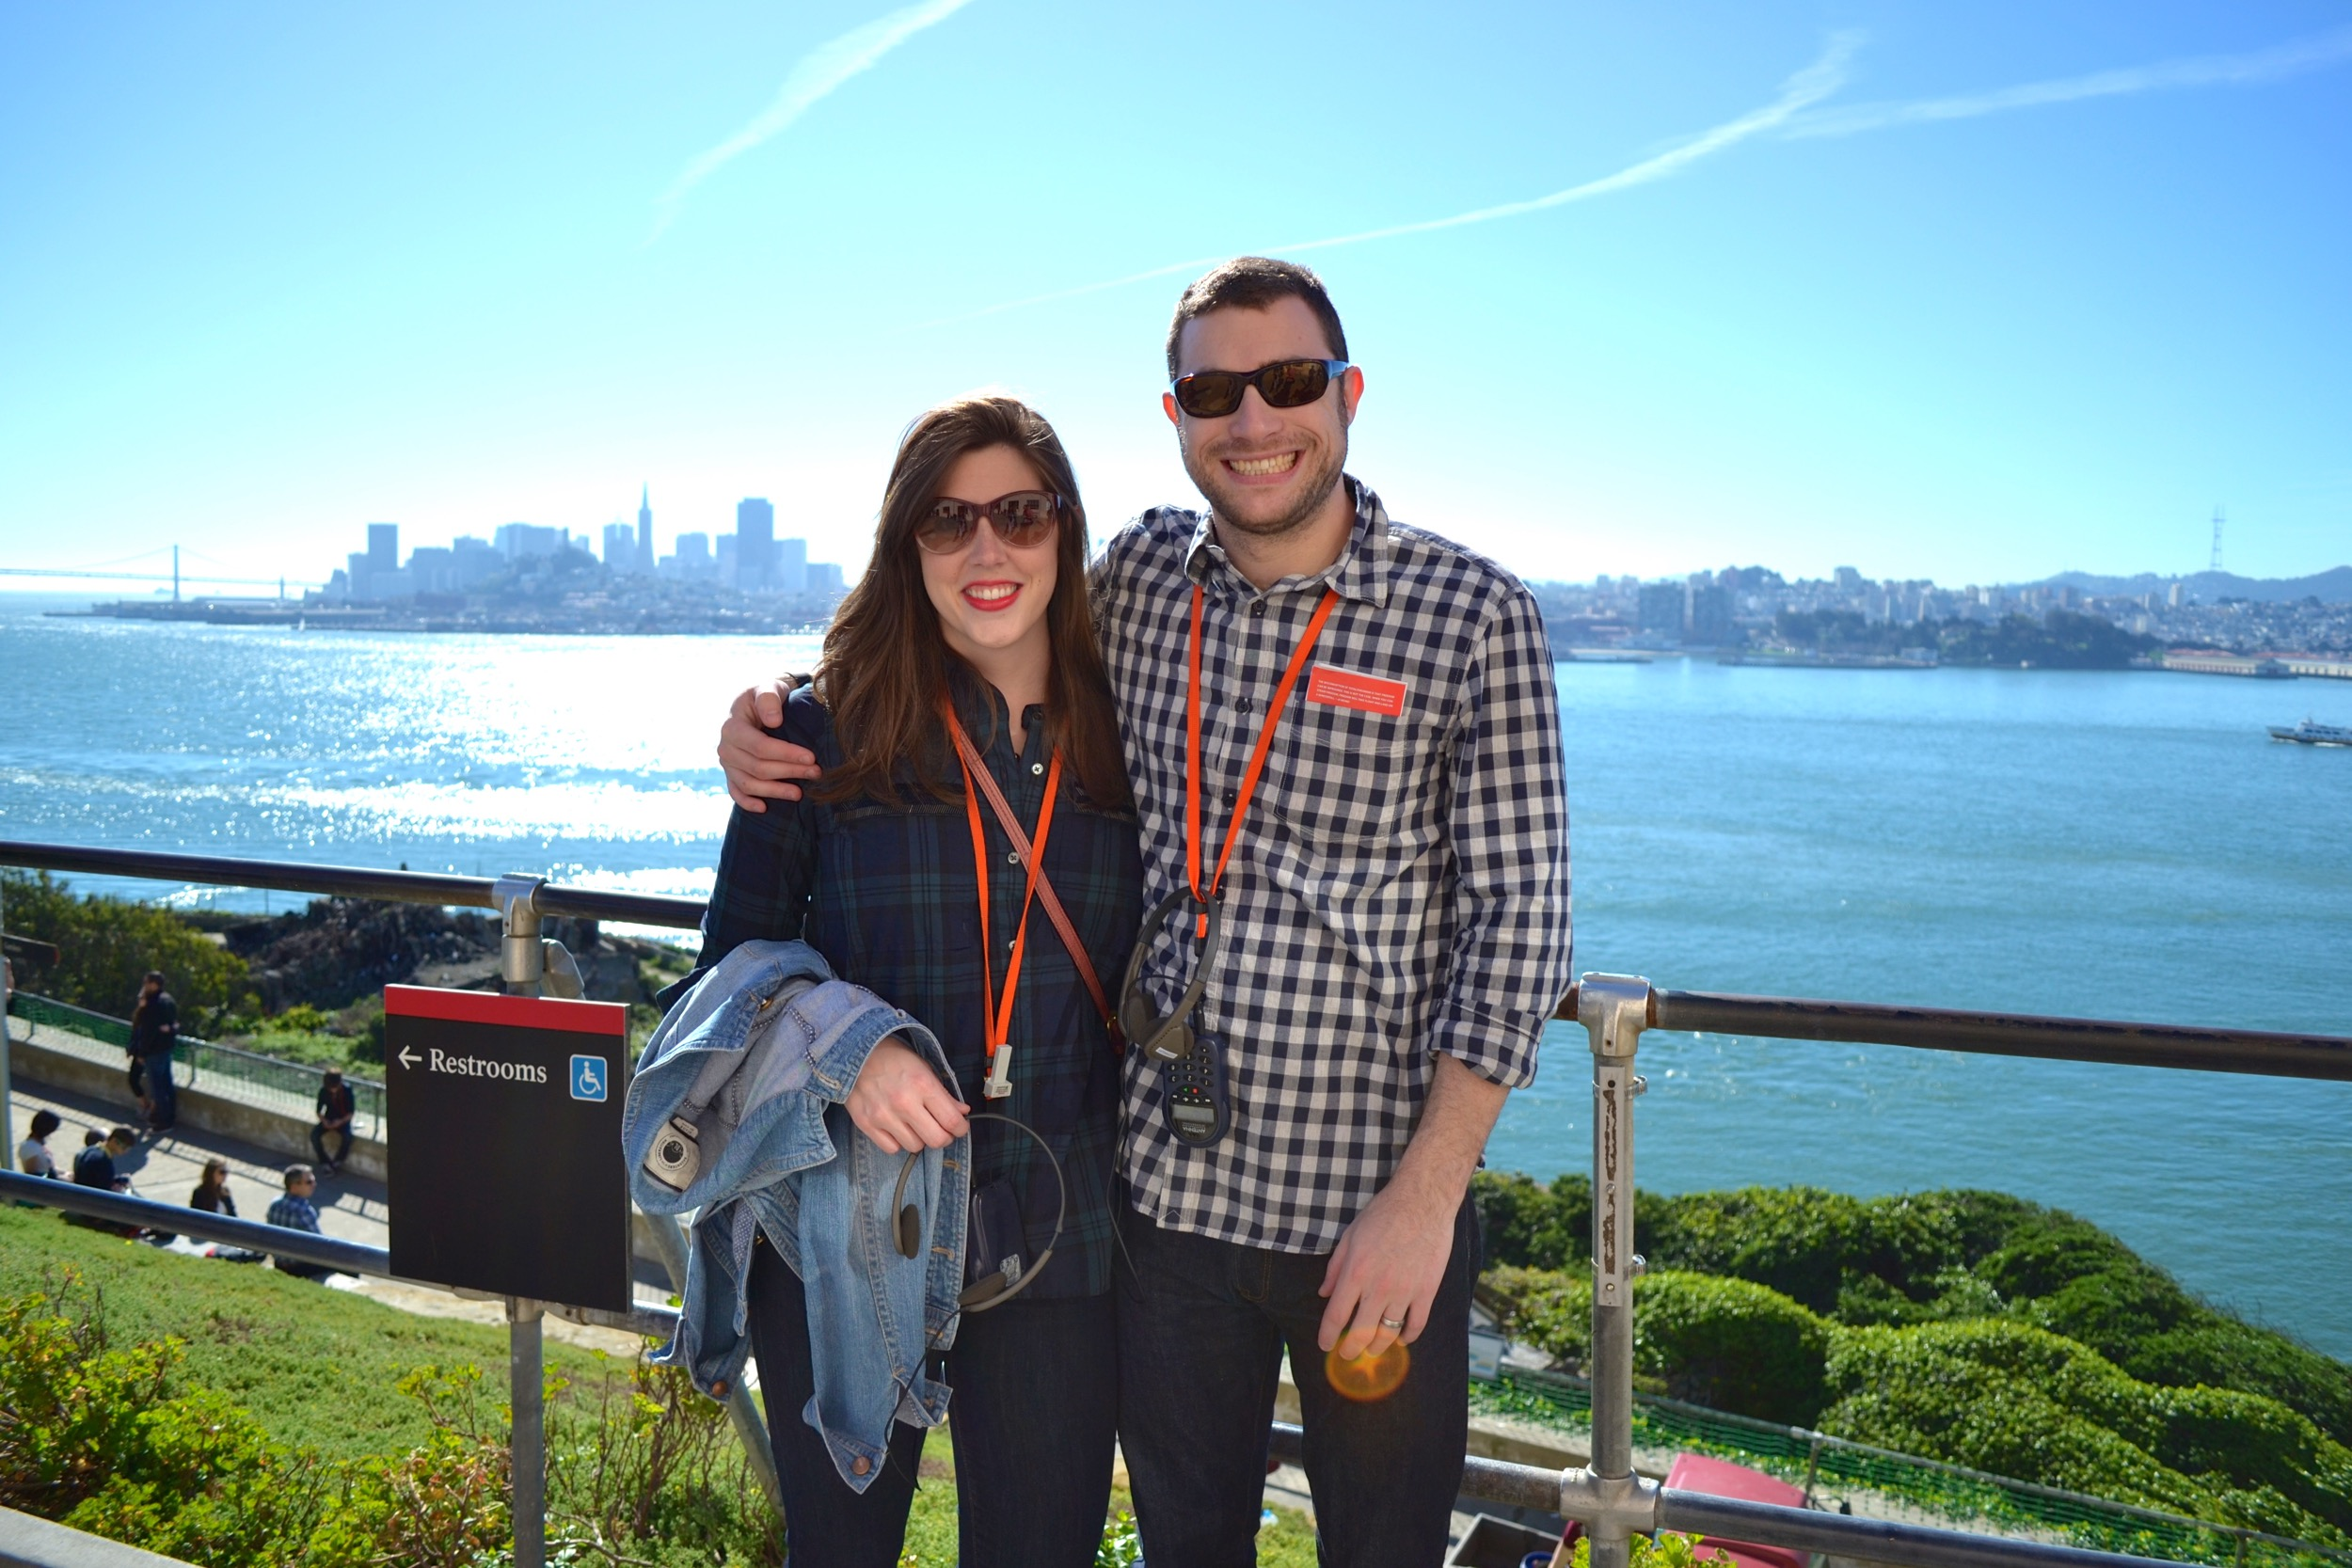 Alcatraz. Good for the visitor who's been to San Francisco before or will be staying a while.